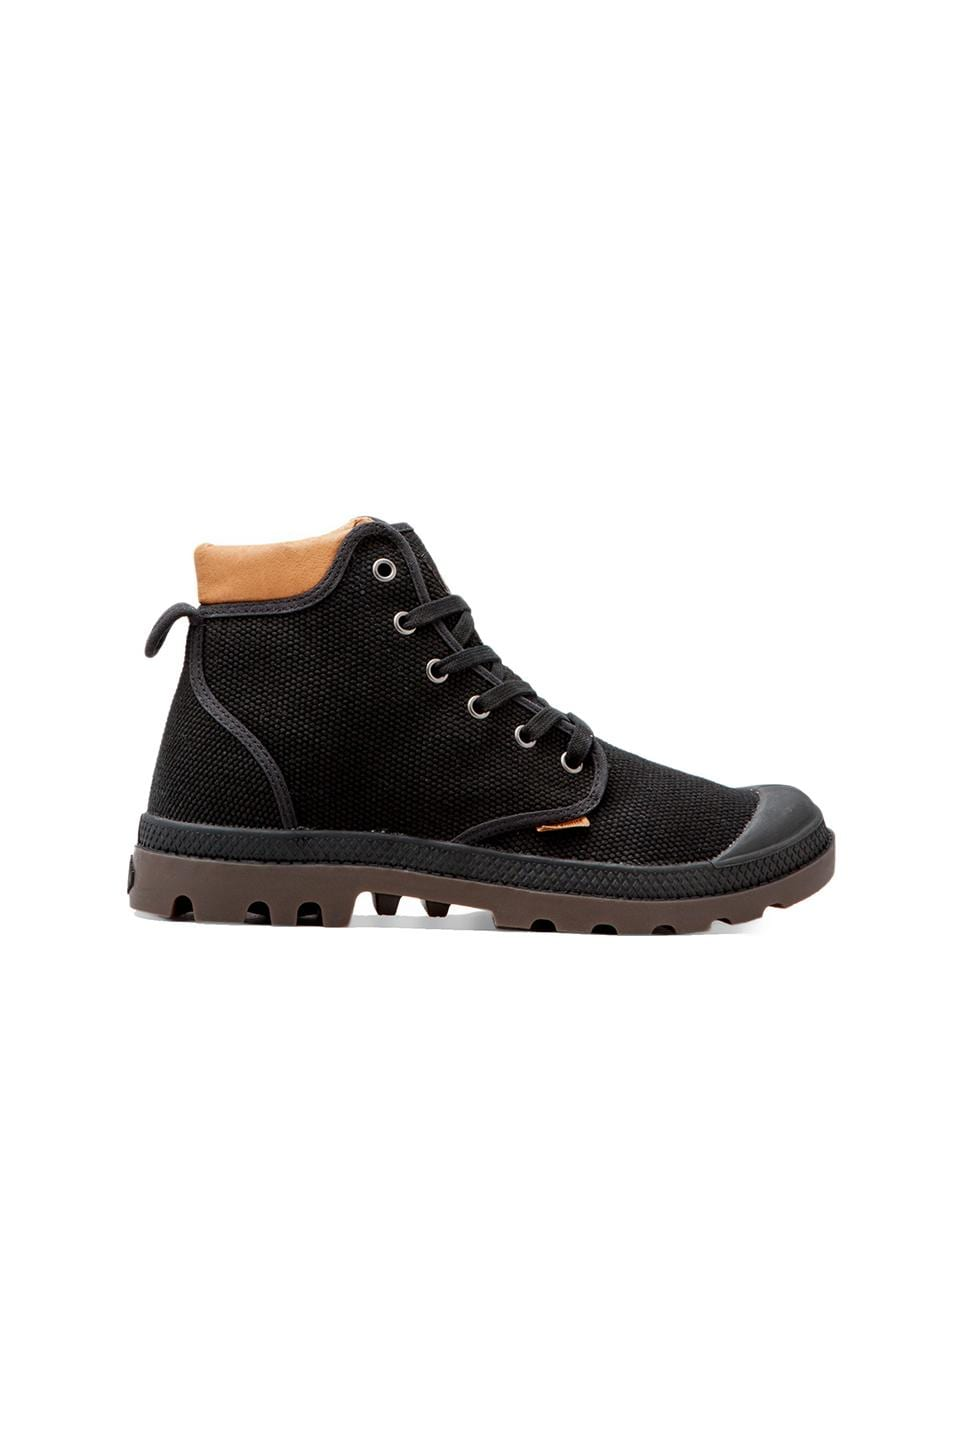 Palladium Palladium Pampa Hi Cuff in Black/Dark Gum